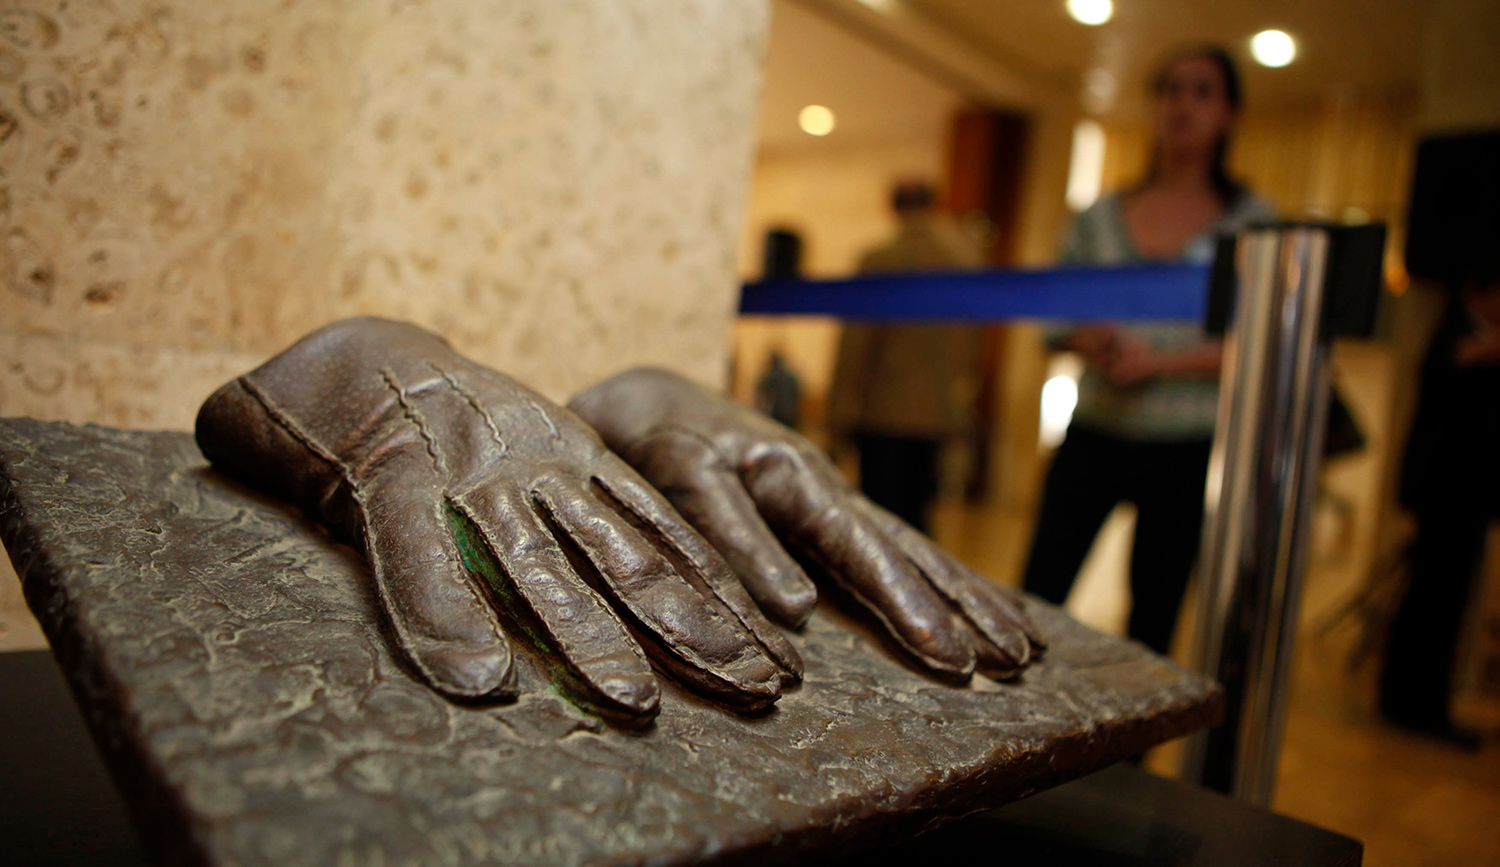 A replica of the gloves that were used by an Israeli Mossad agent during the capturing of Adolf Eichmann in Argentina in 1960 displayed at an exhibition at the Knesset in Jerusalem on December 12, 2011. GALI TIBBON/AFP via Getty Images.